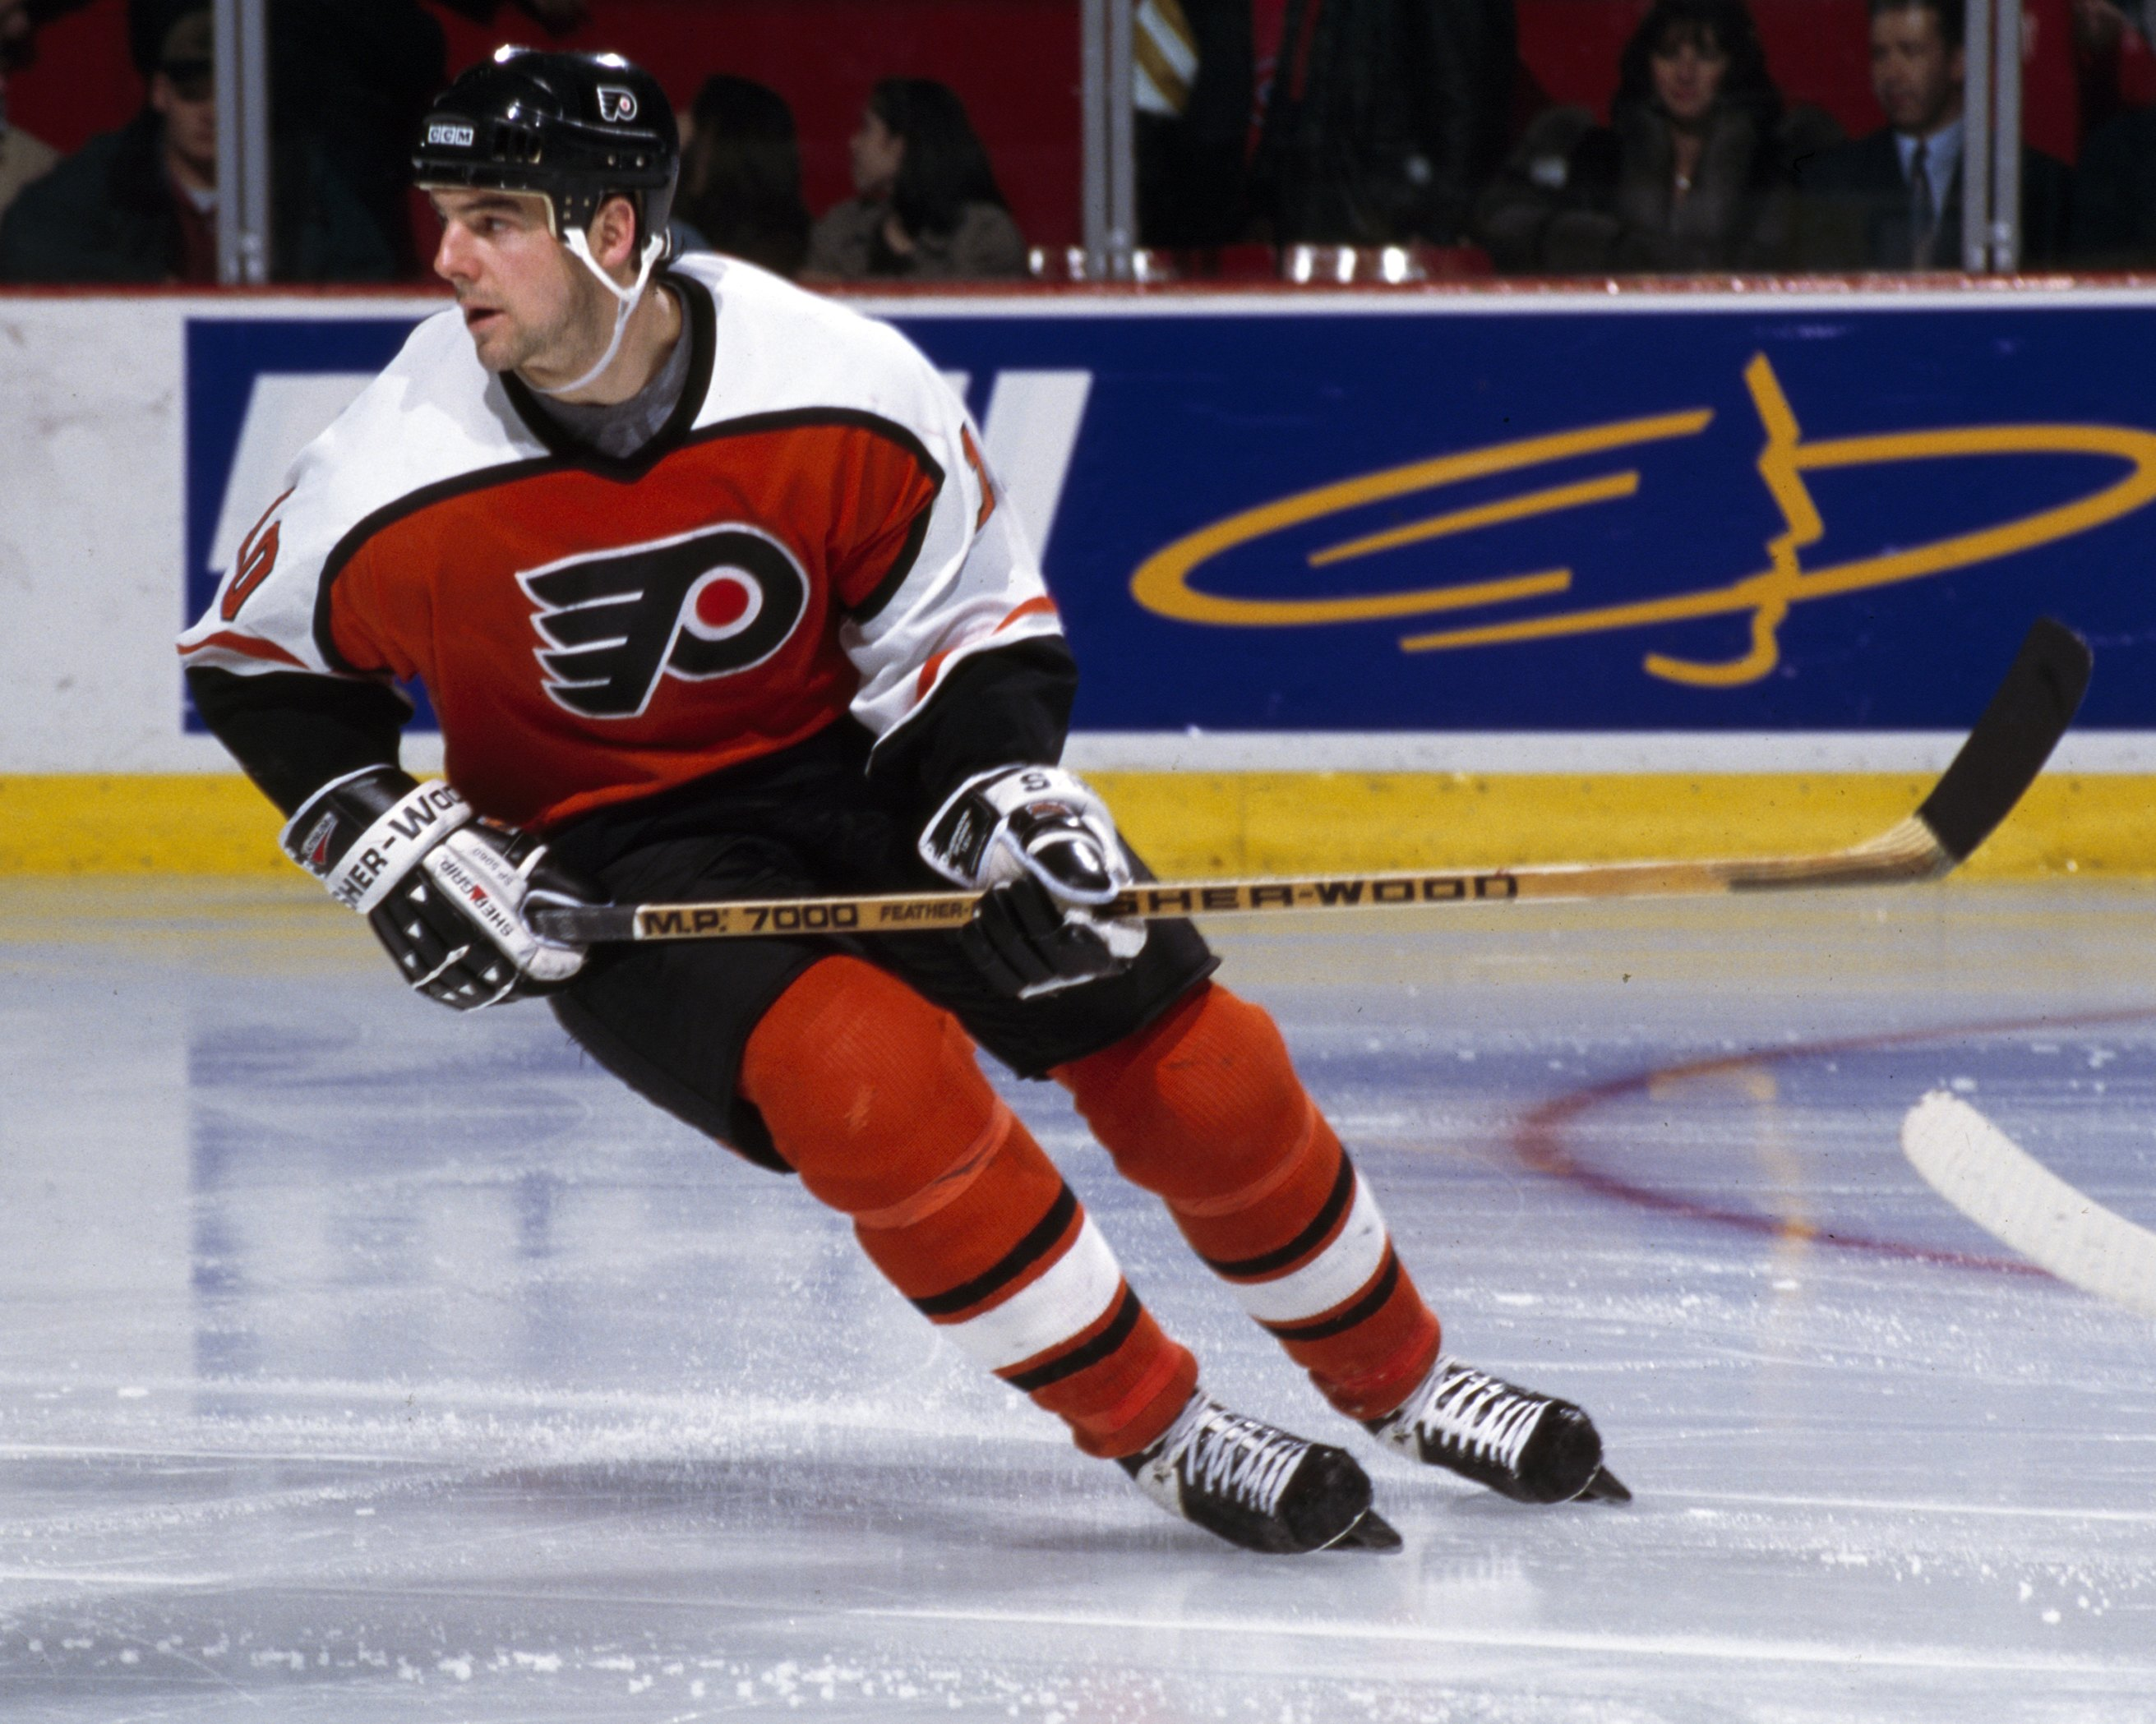 33d8519f8 Leach thinks former Flyers John LeClair, above, and Brian Propp should be  in the